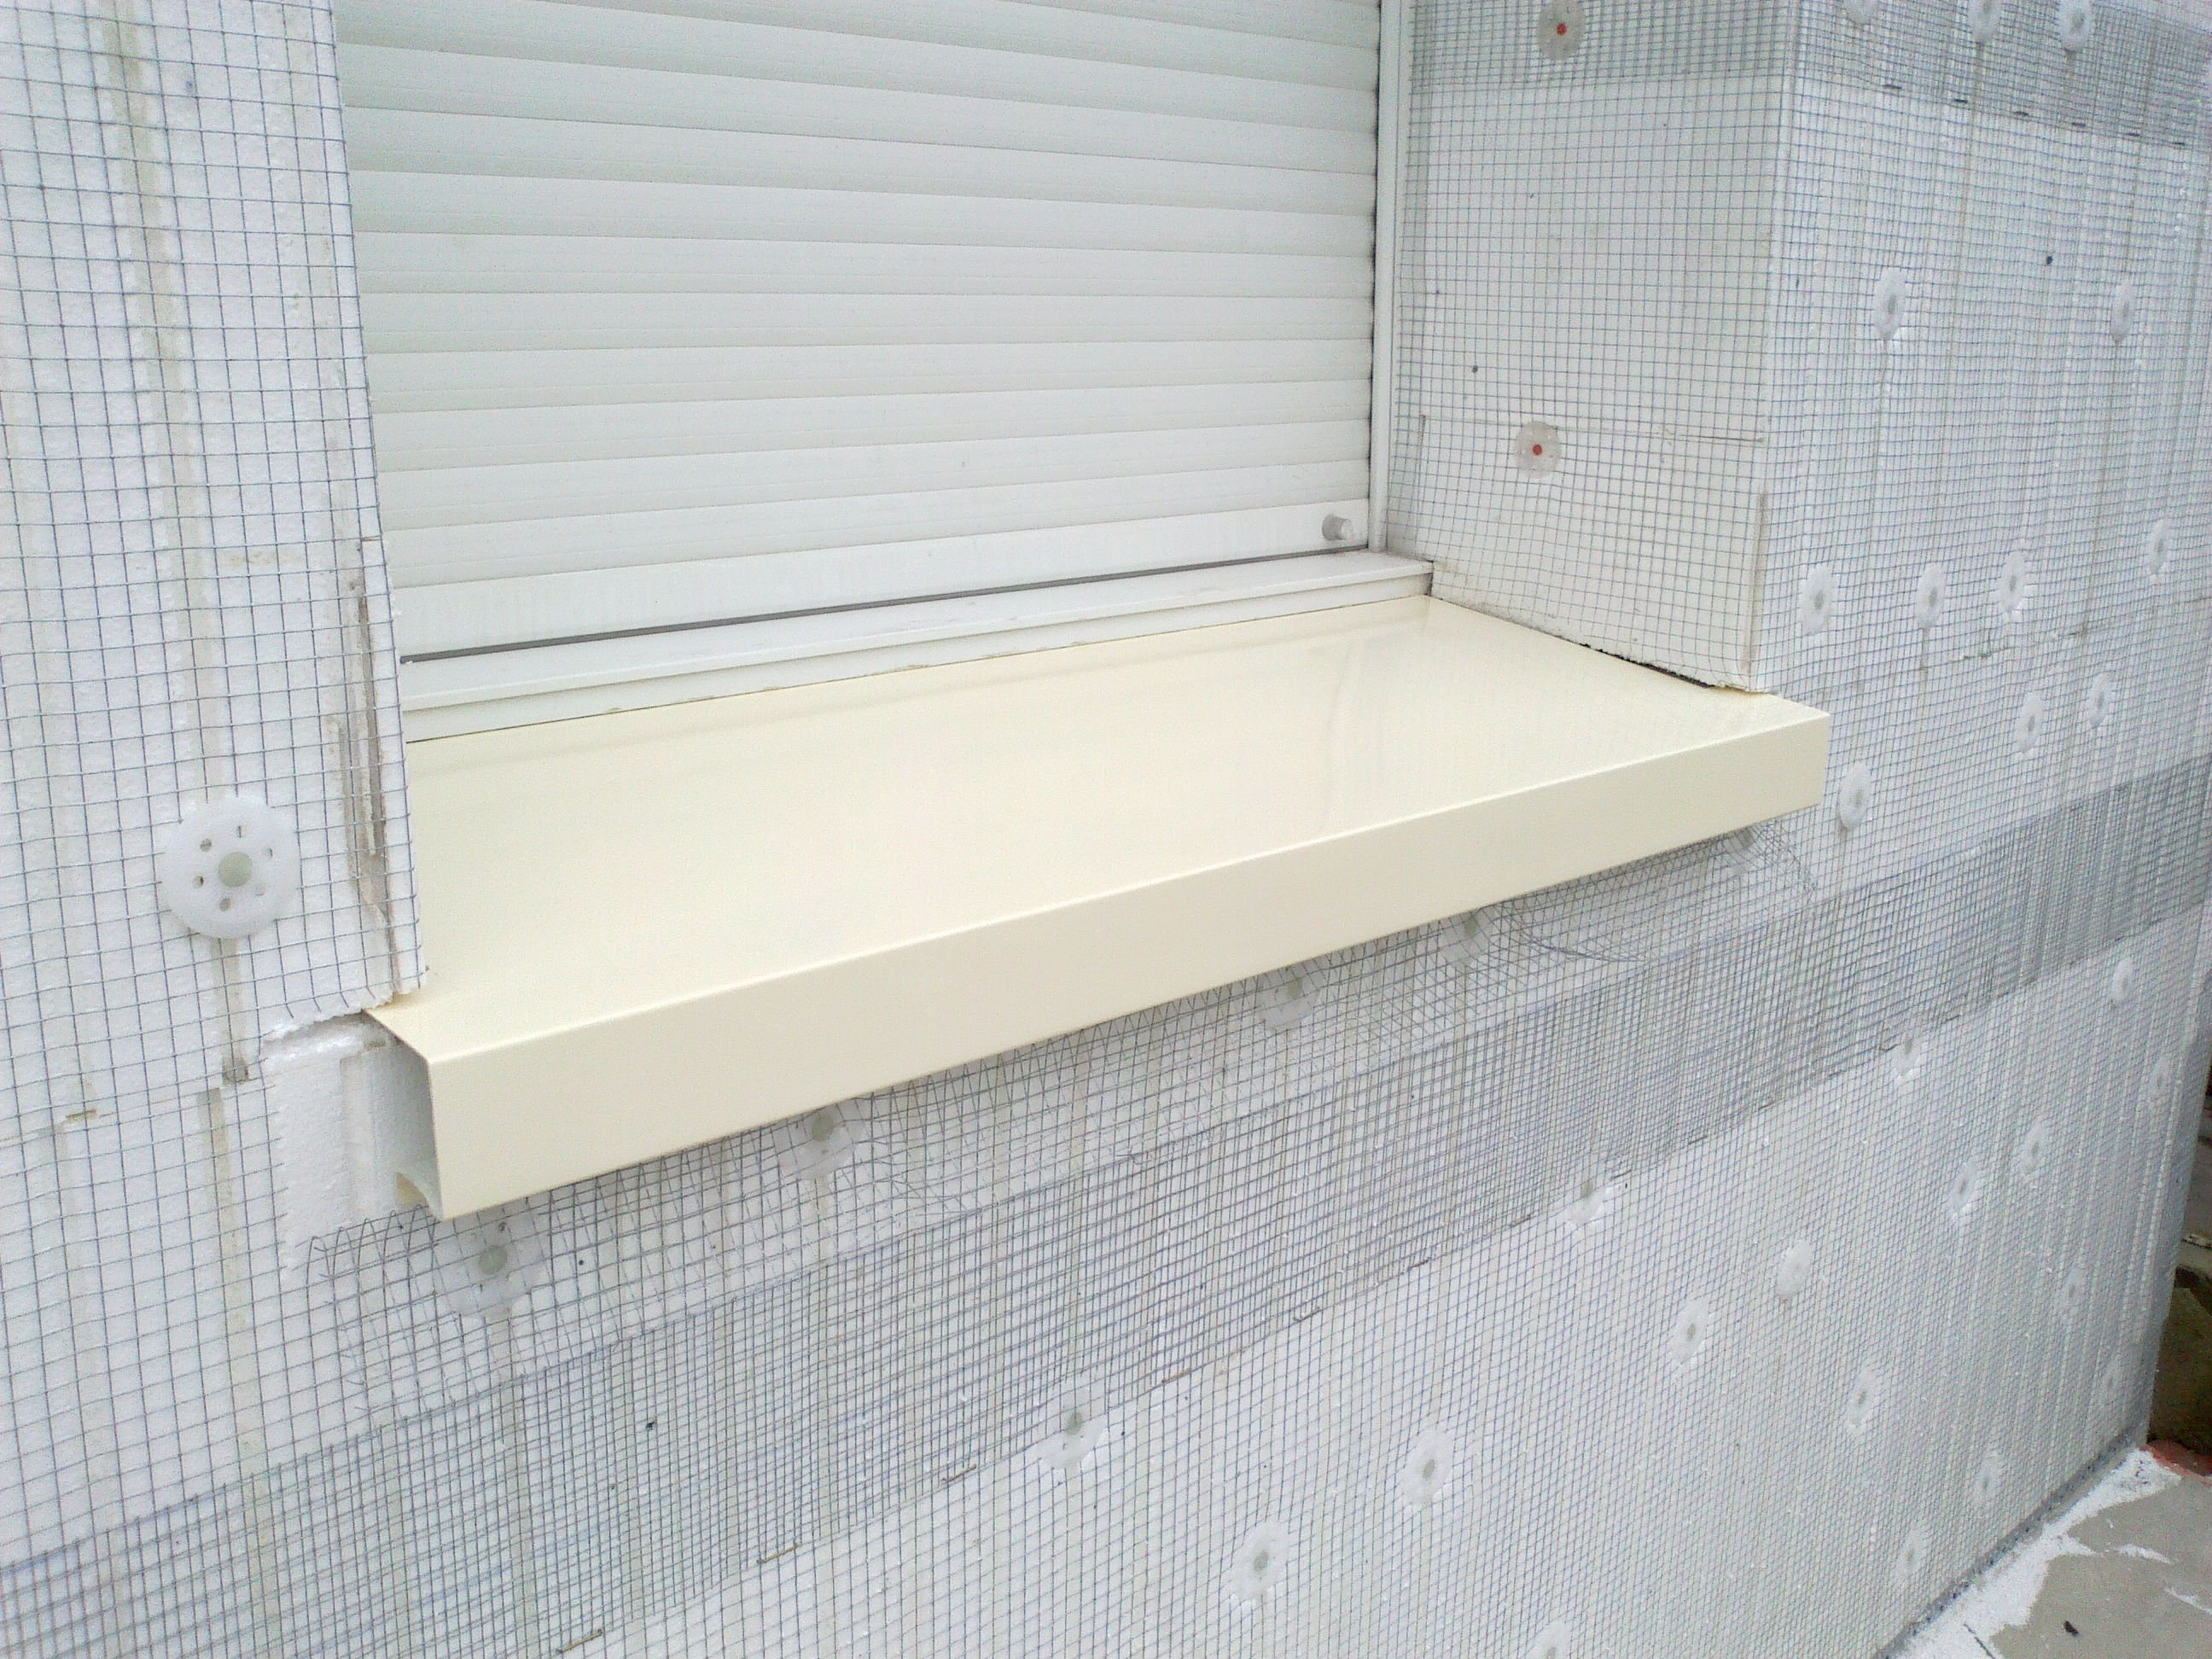 Habillage fenetre pvc renovation les for Moulure fenetre exterieur